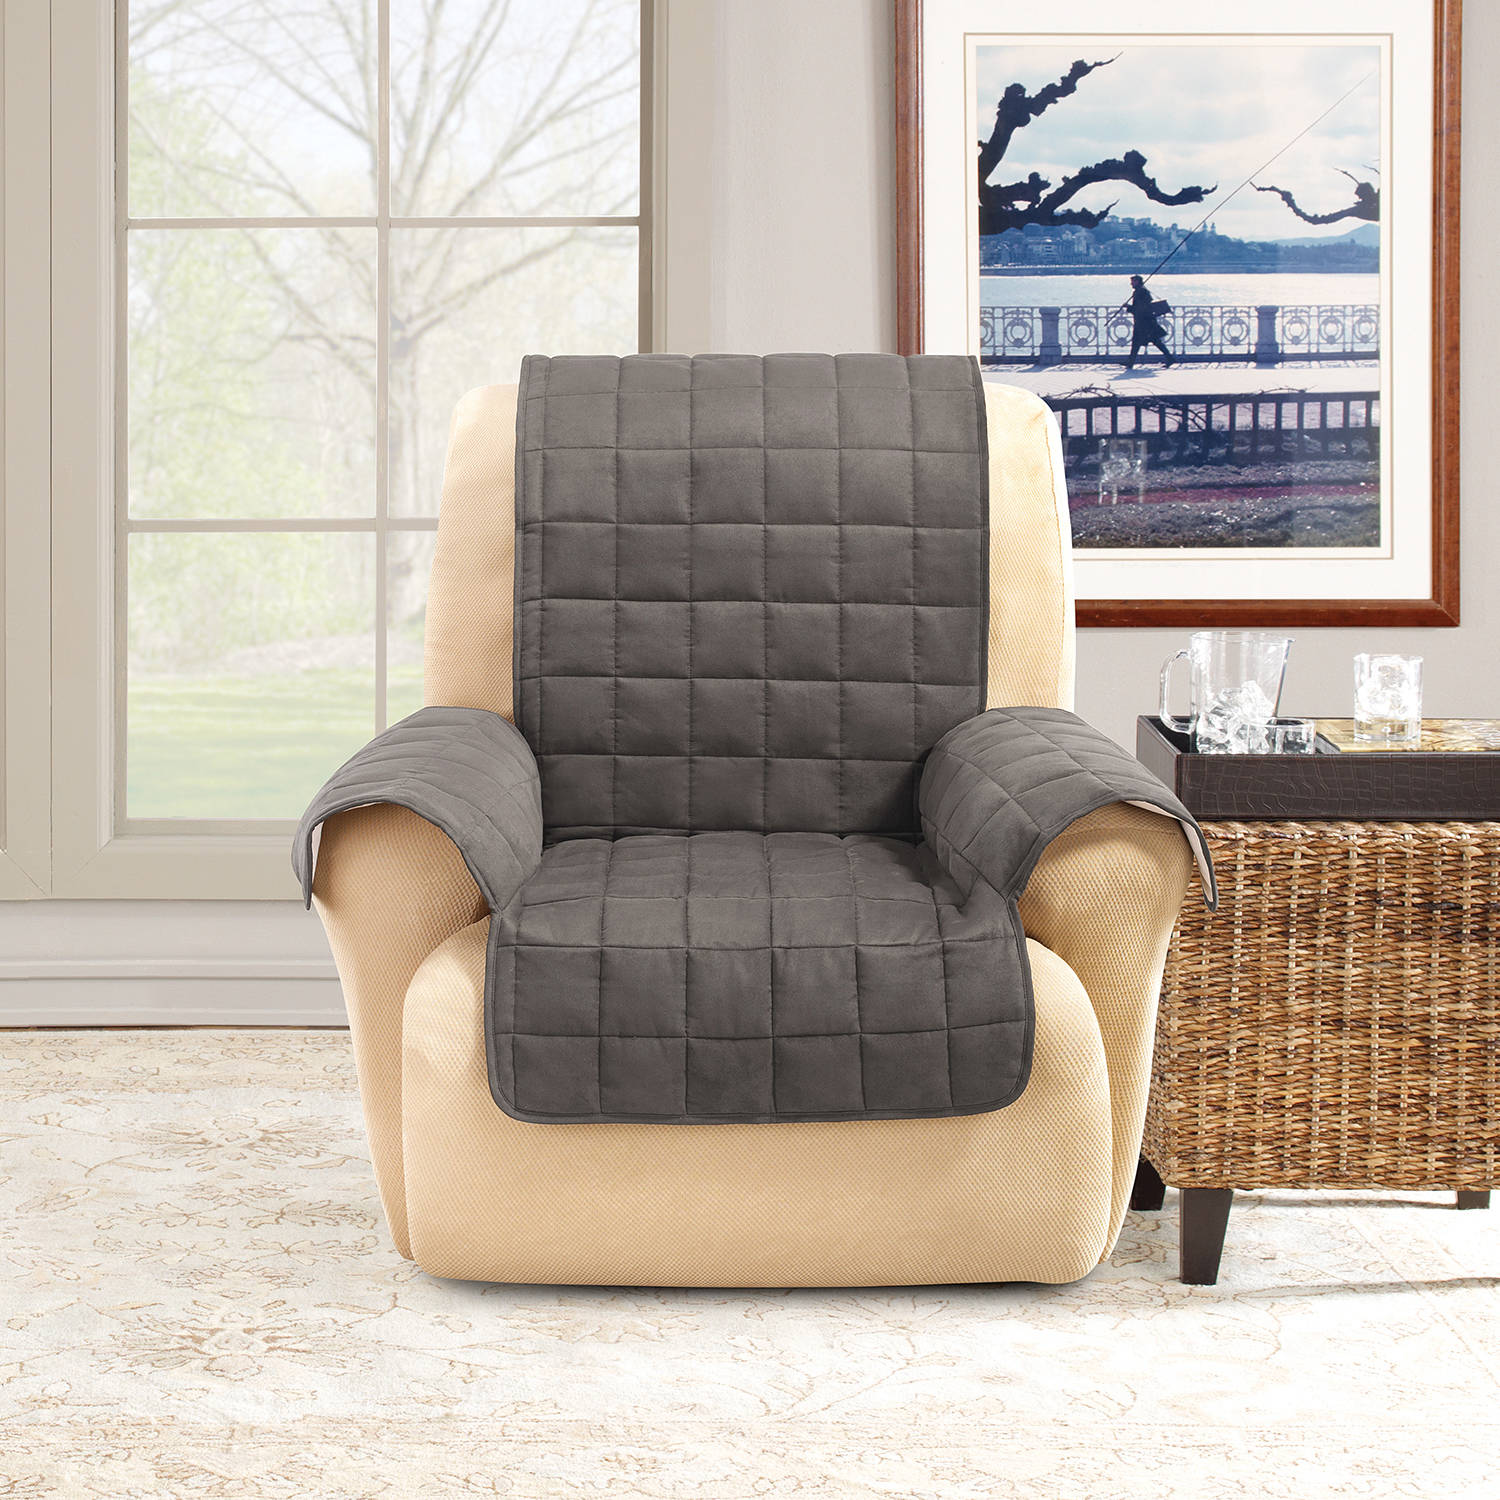 Great Sure Fit Ultimate Waterproof Quilted Pet Recliner Cover